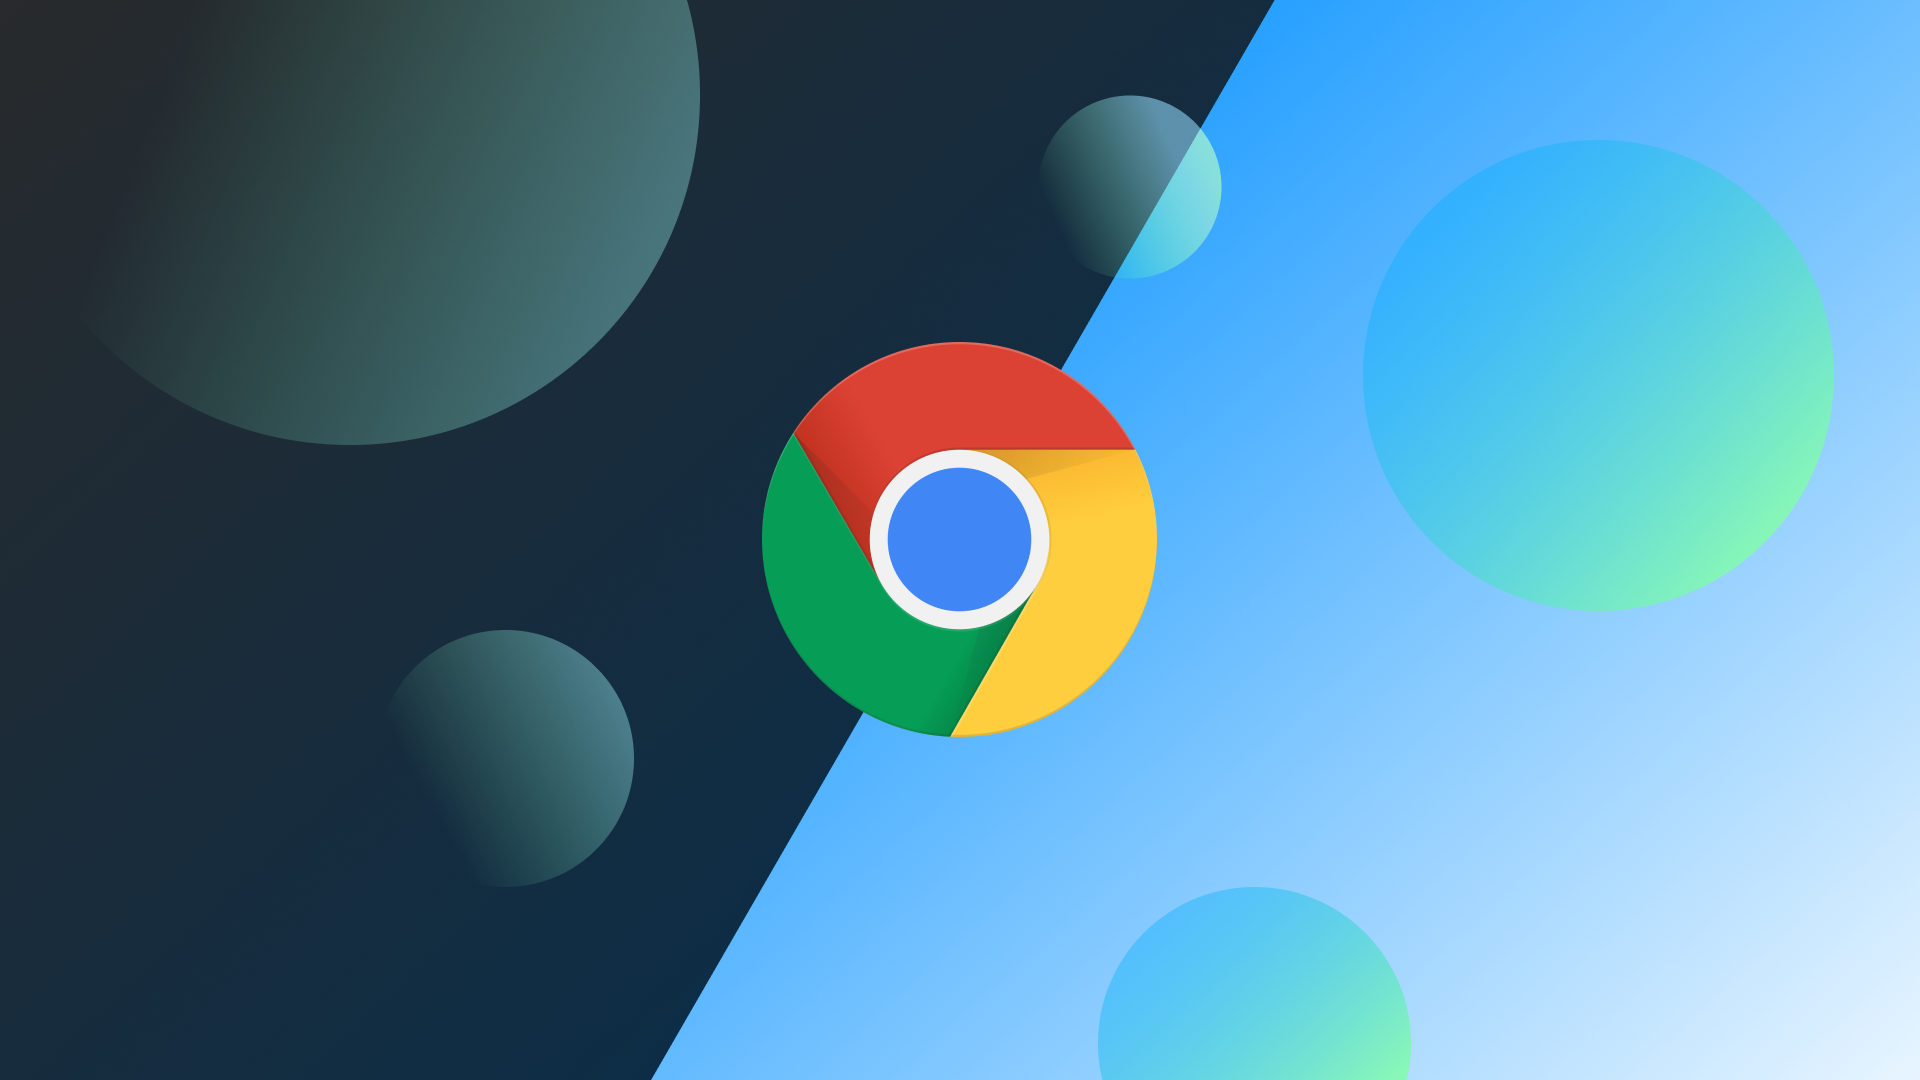 Google's new light and dark system theme for Chrome OS is around the corner — here's what it looks like